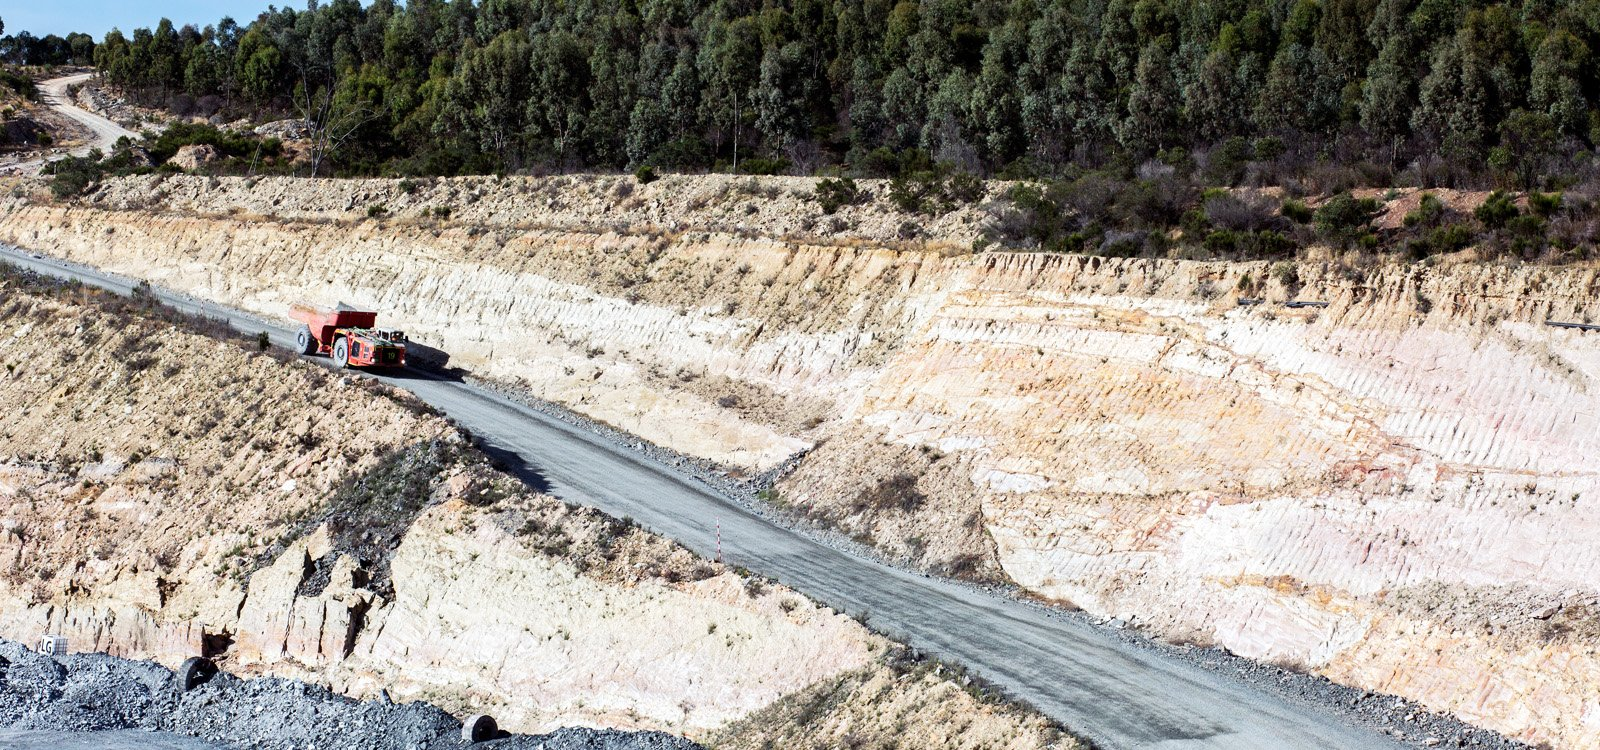 <p>Fosterville purchased t two additional Sandvik TH663s to replace its aging 45-tonne trucks.</p>